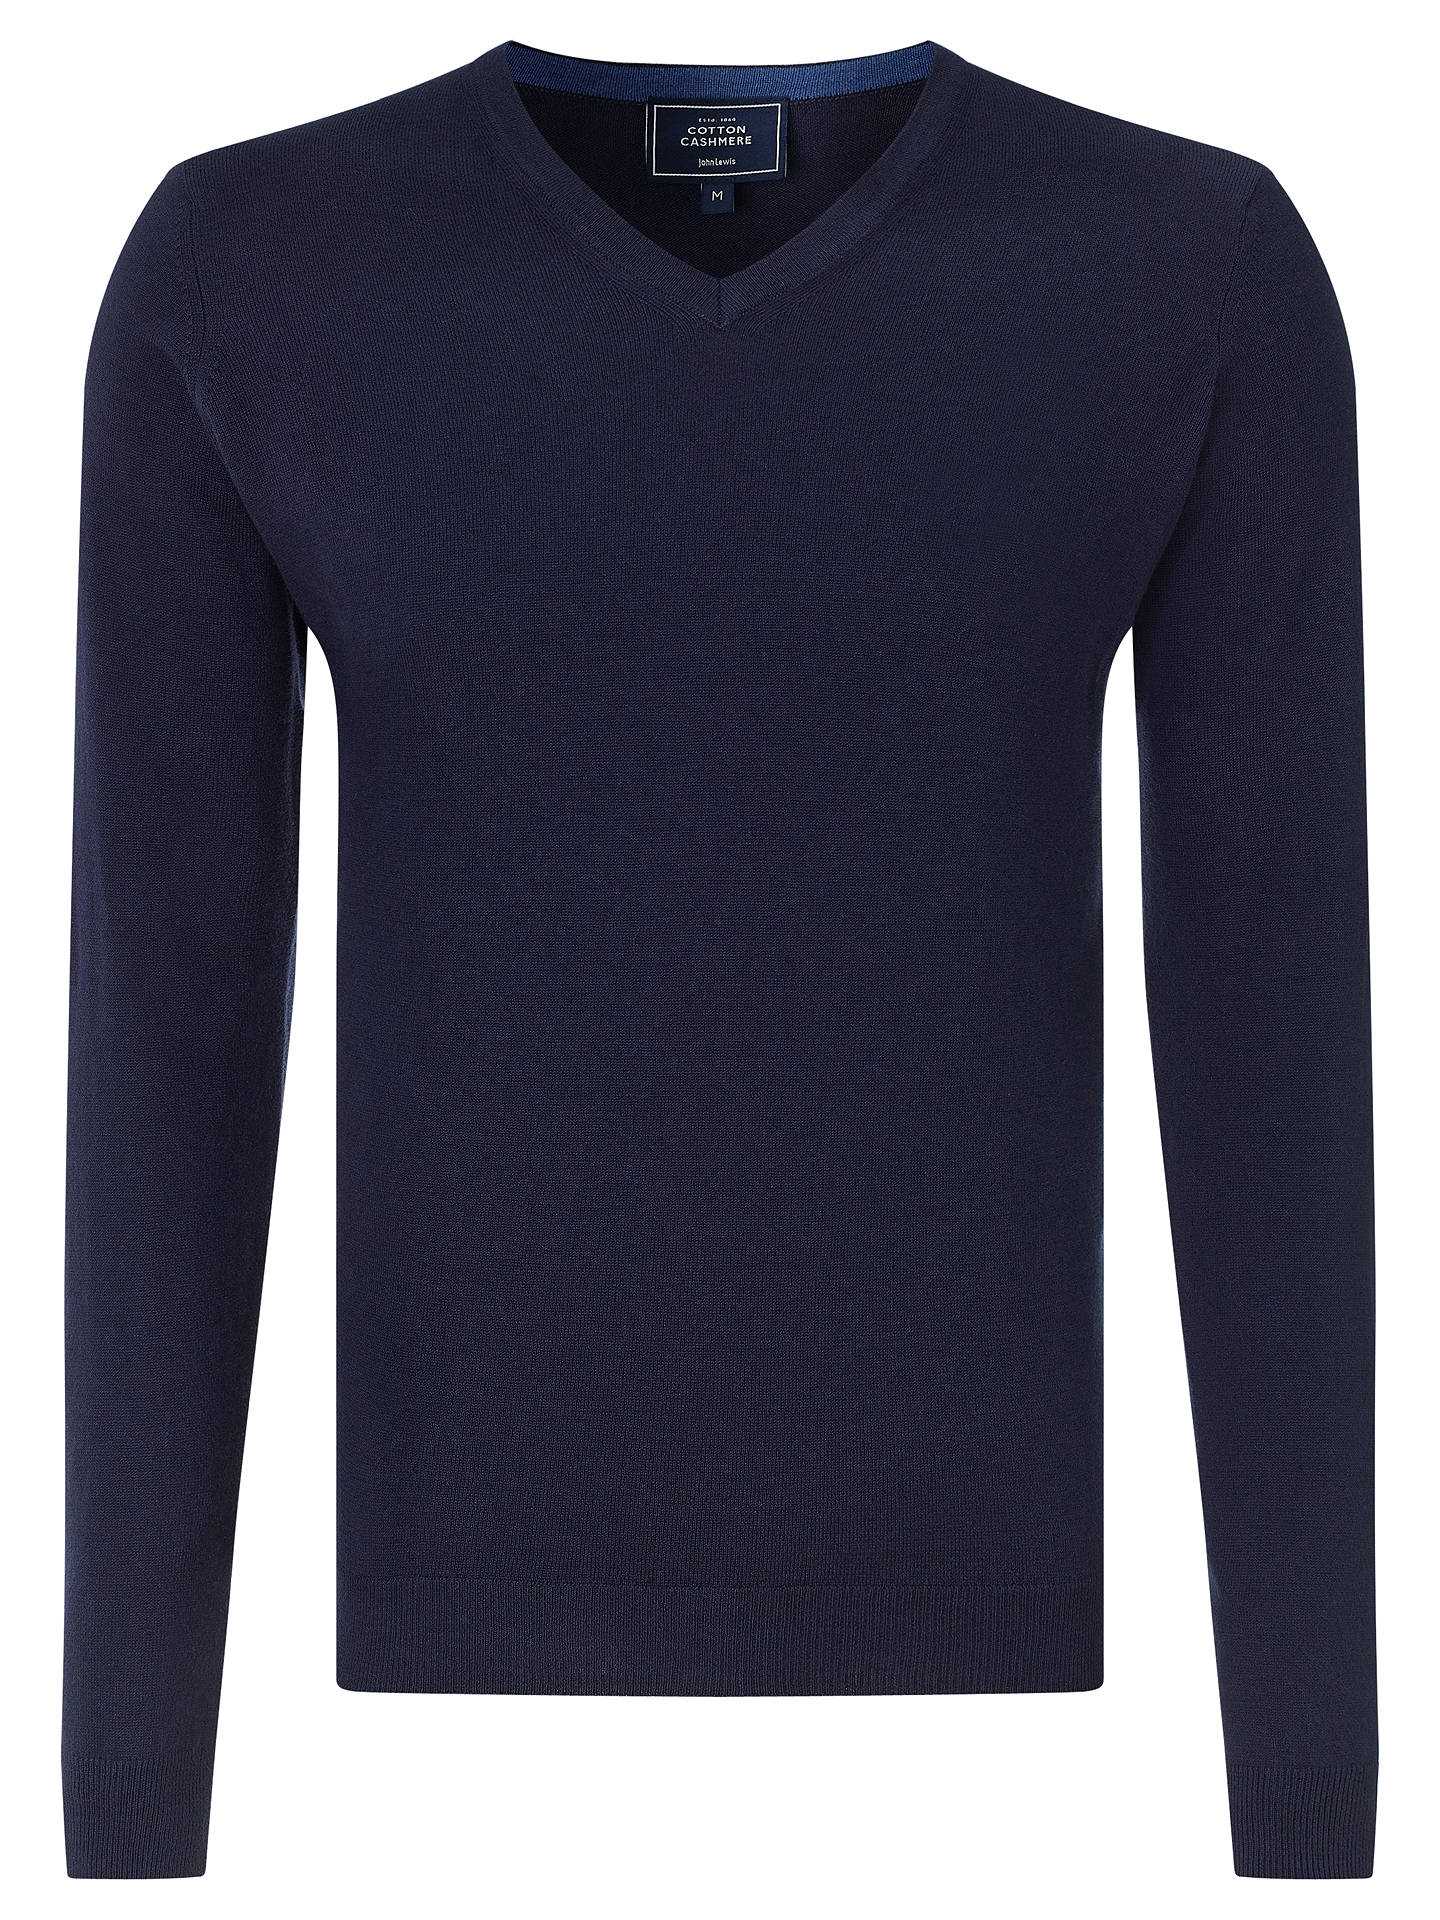 3b3bb04268 Buy John Lewis Cotton Cashmere V-Neck Jumper, Navy, S Online at johnlewis  ...